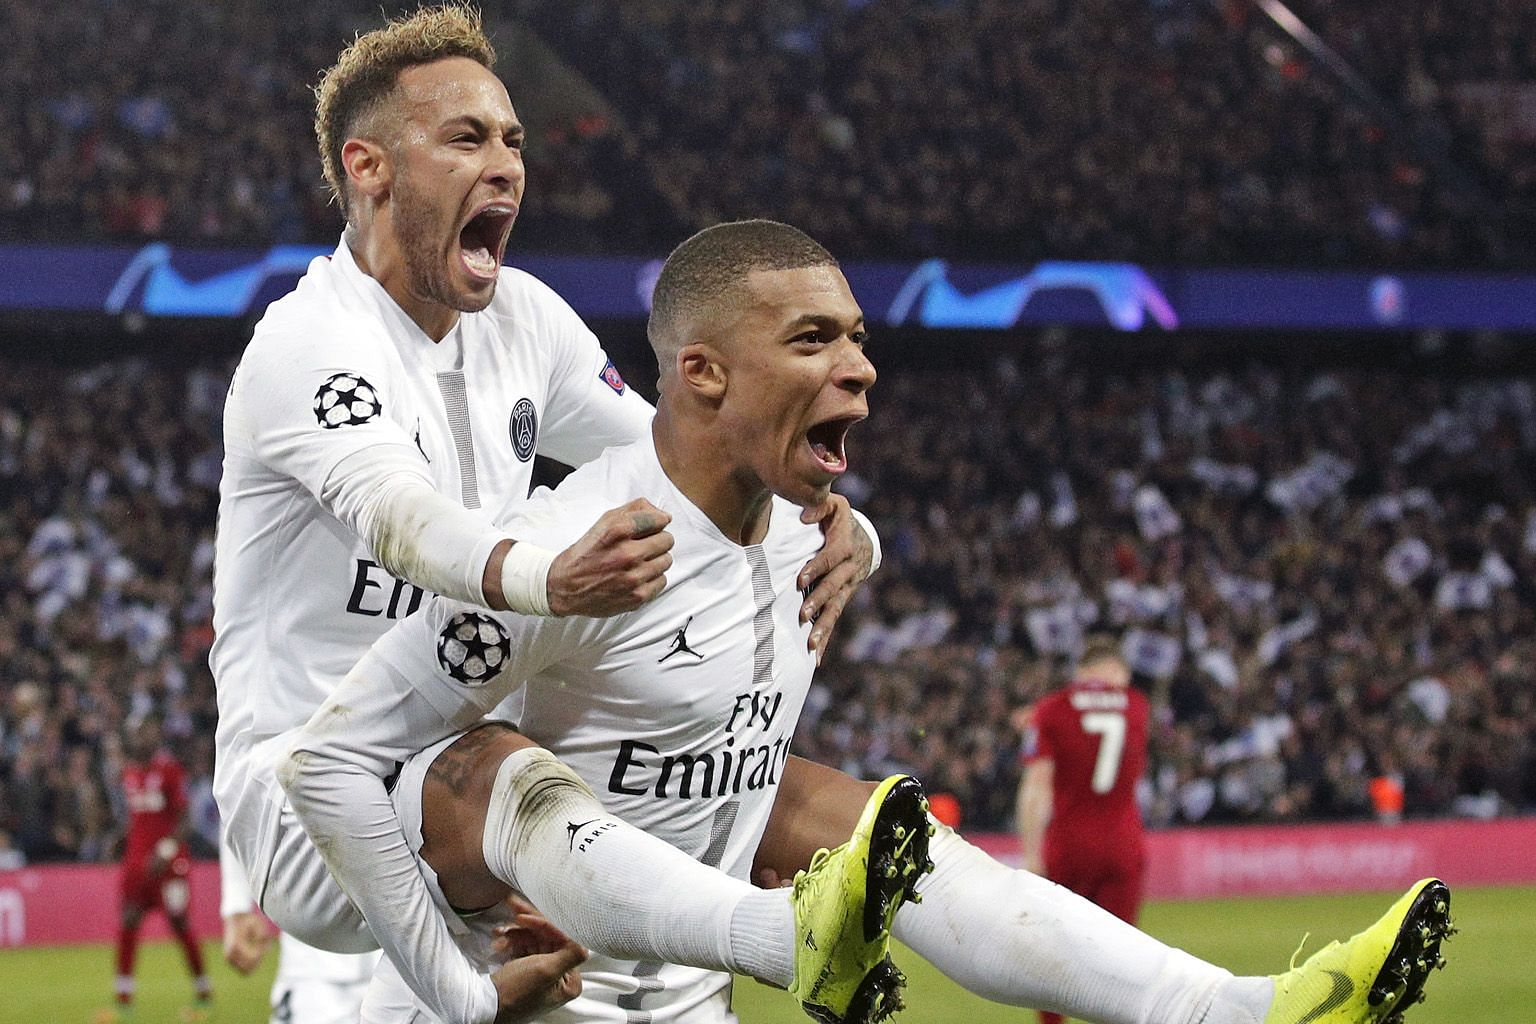 Paris Saint-Germain's Neymar (left) celebrating with Kylian Mbappe after scoring in their 2-1 win over Liverpool. The Brazilian repeatedly went down at the slightest of contacts to break up the game's flow.